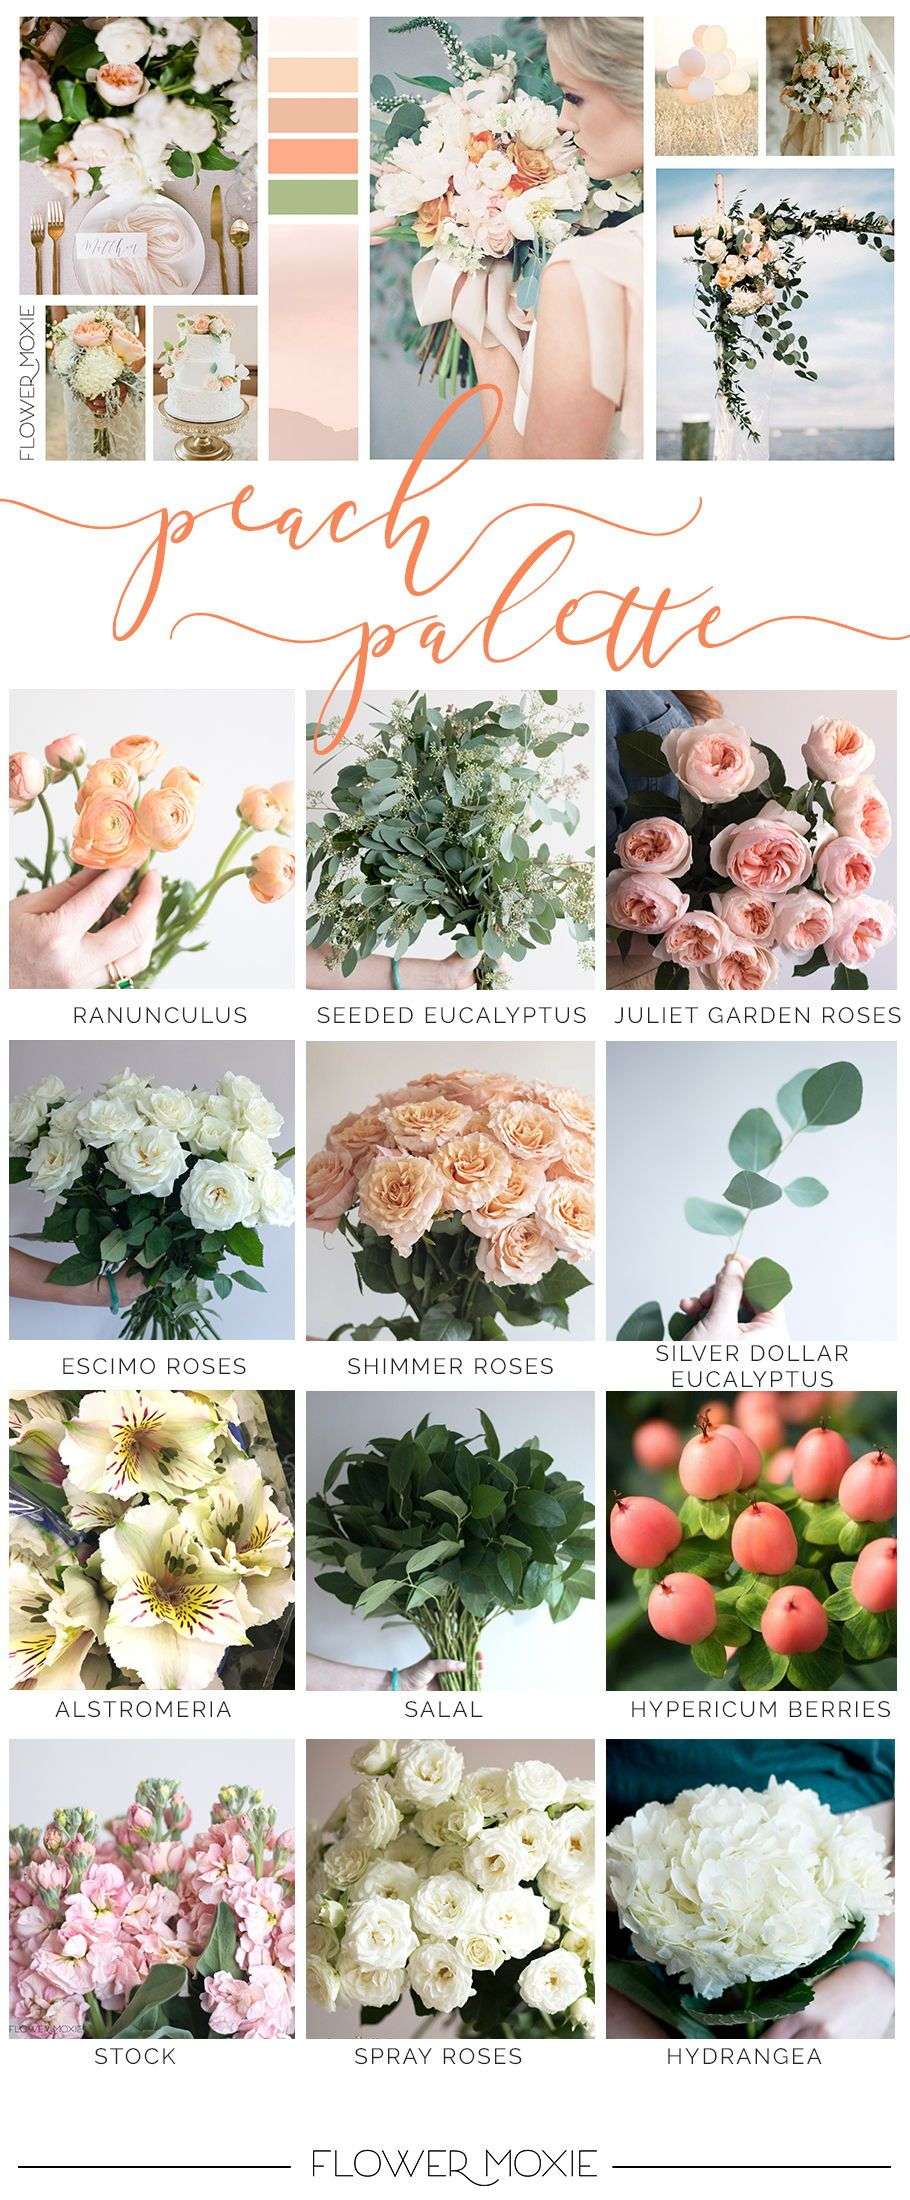 Peaches And Cream Color Palette Premade Packages To Make Your Diy Flower Designs A Cinch Peach Wedding Flowers Wedding Flower Types Bulk Wedding Flowers